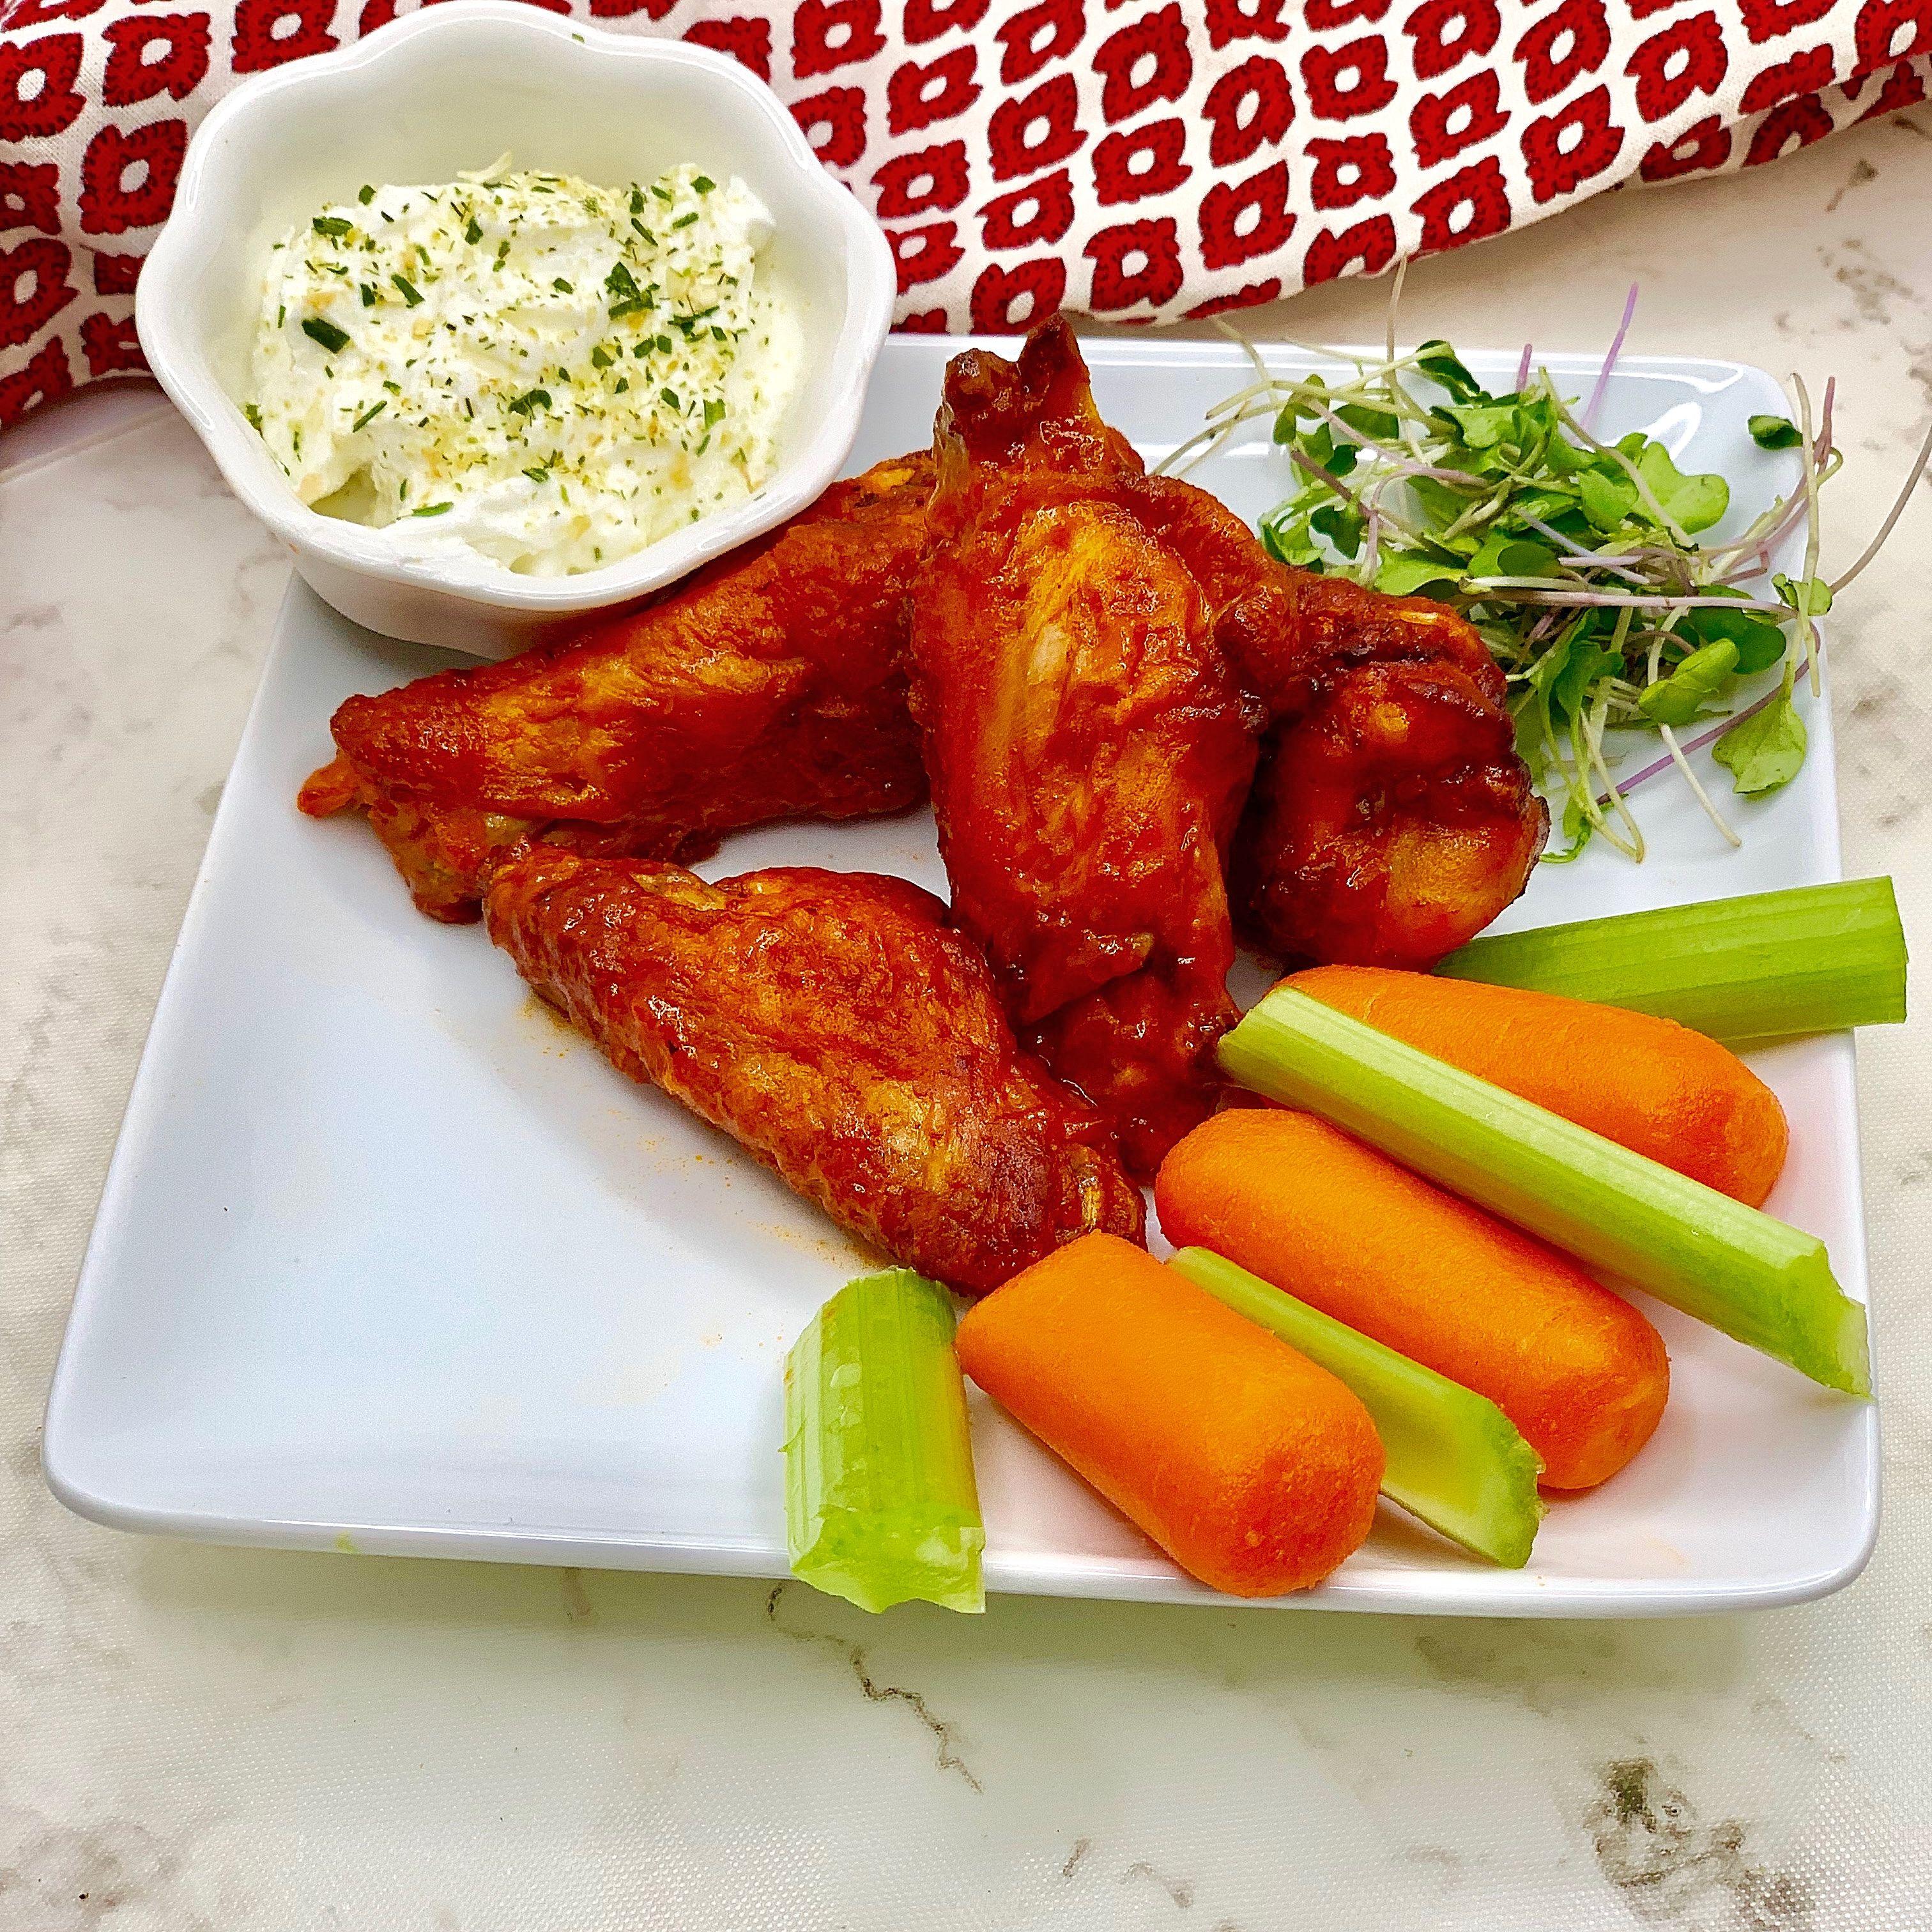 Air Fryer Chicken Wings With Yogurt Blue Cheese Dipping Sauce